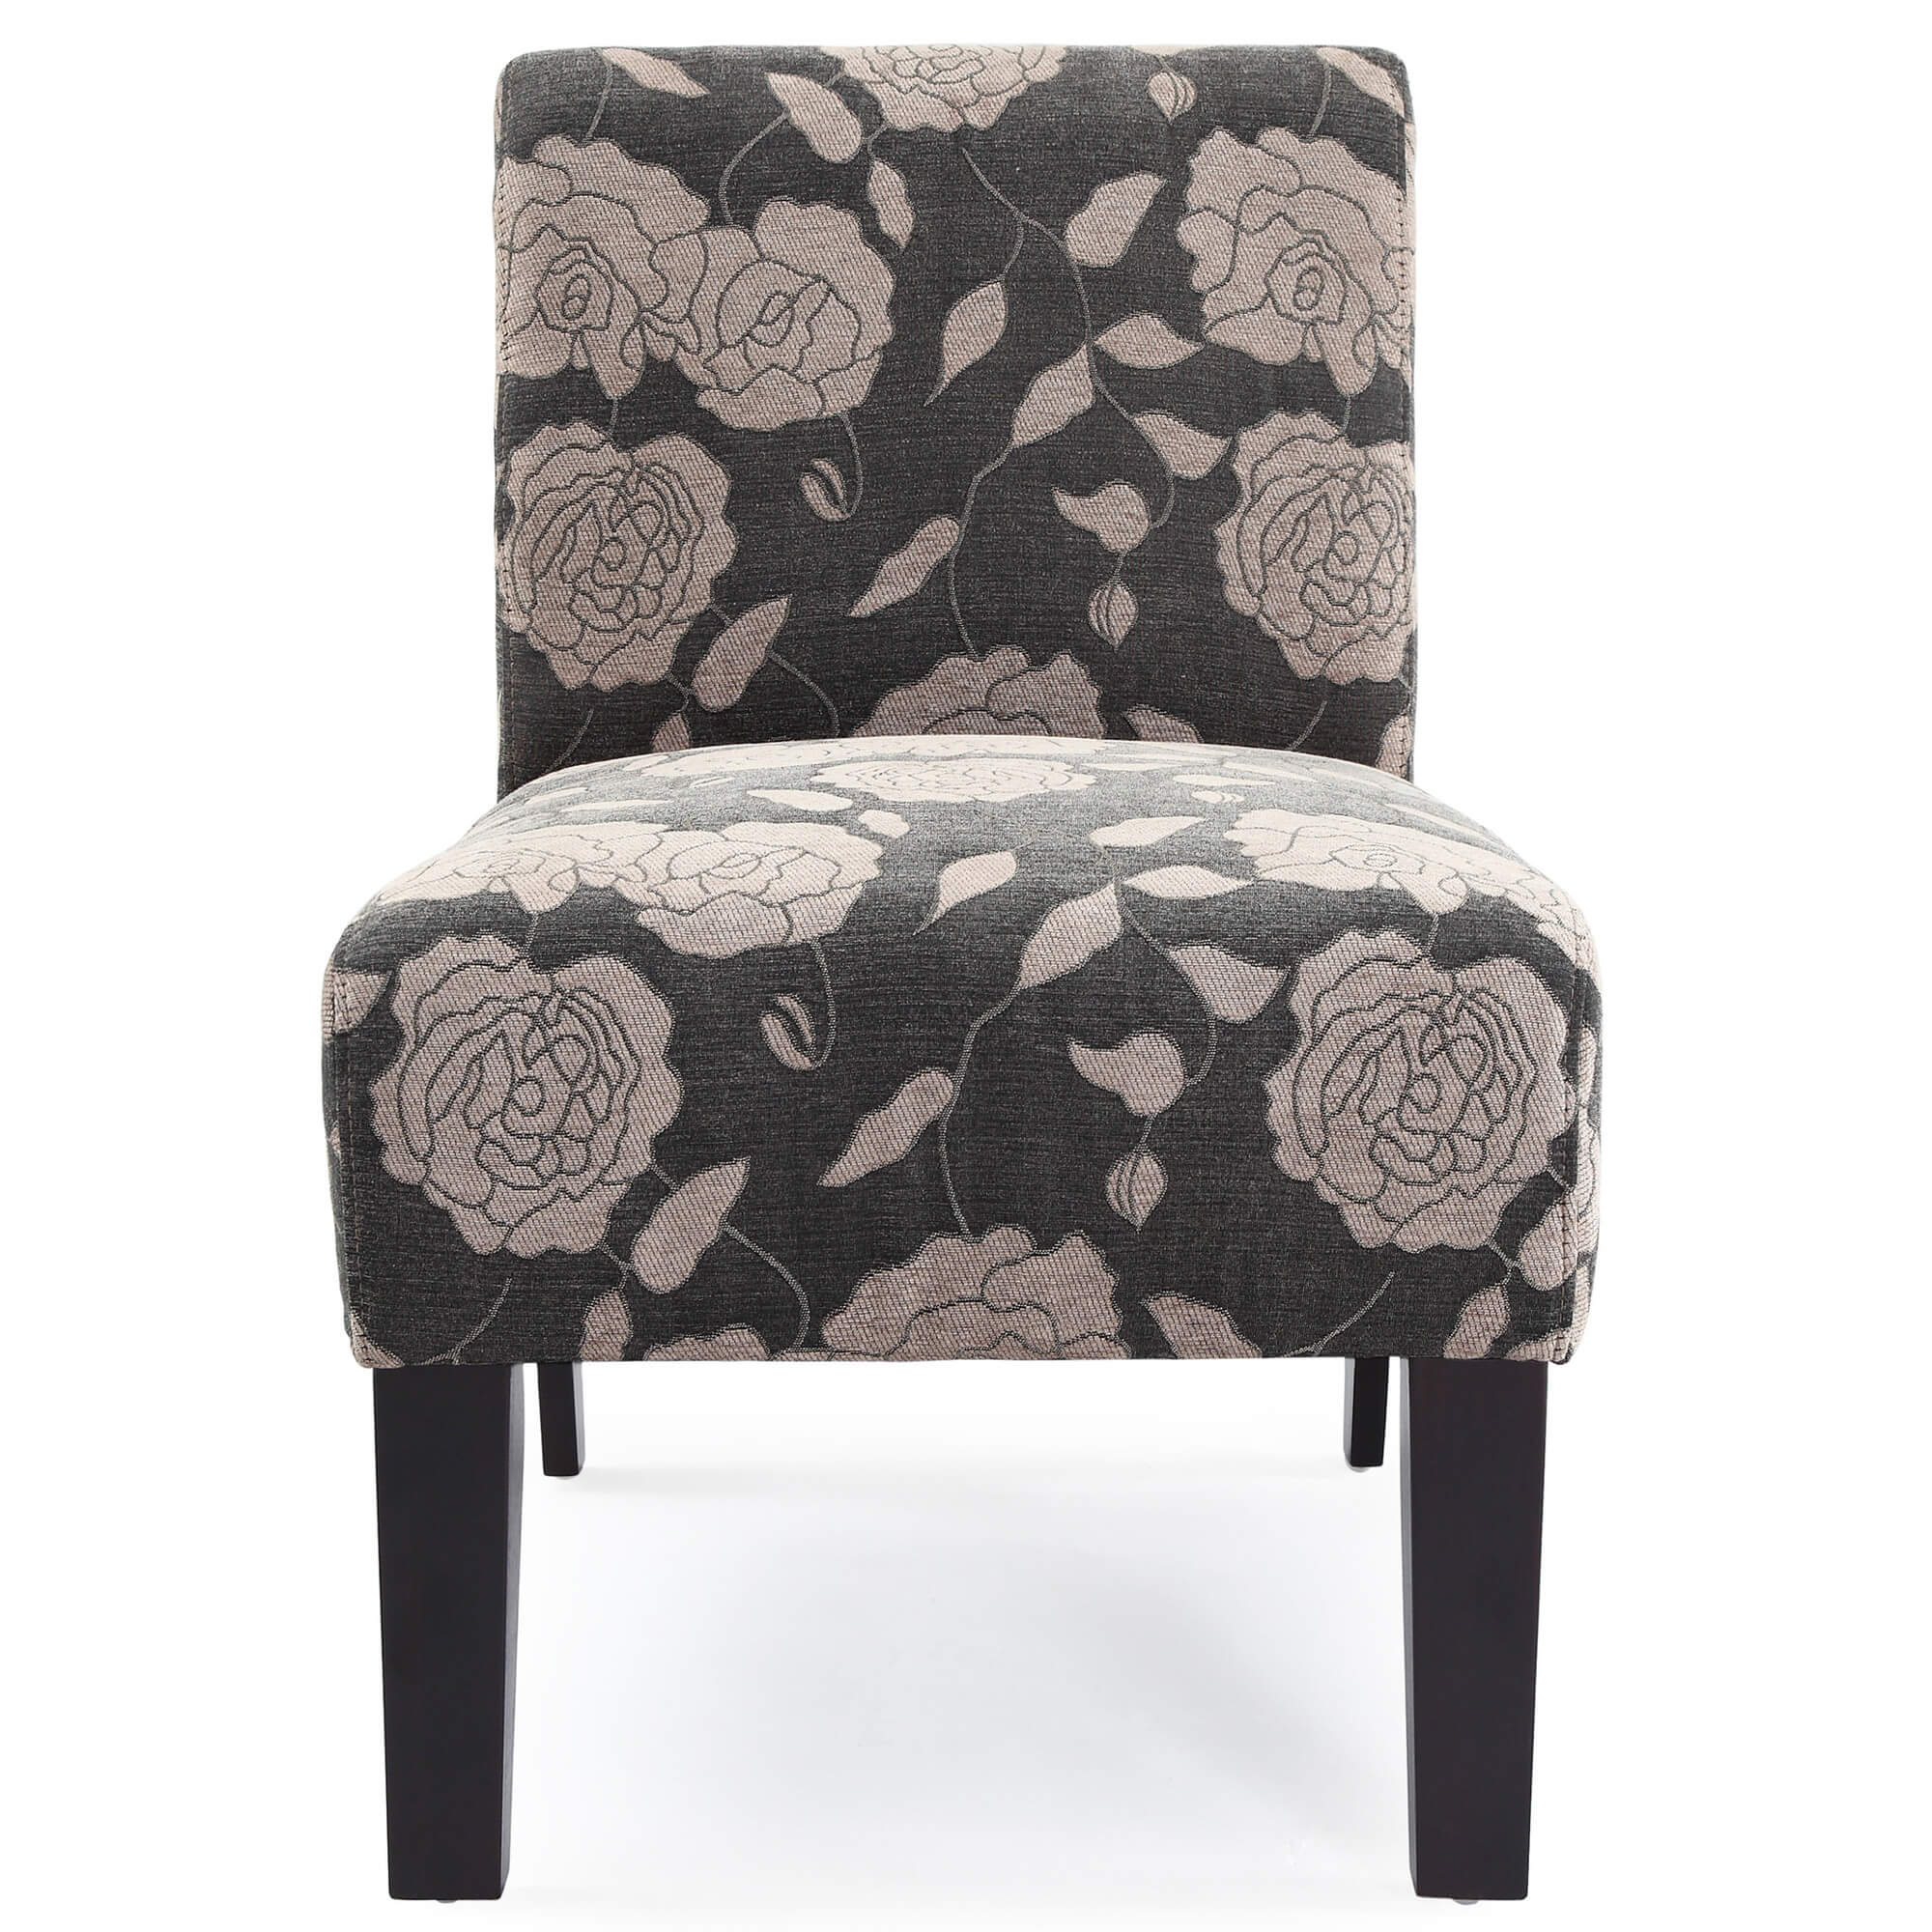 10 Attractive Accent Chairs Under $10 (10)